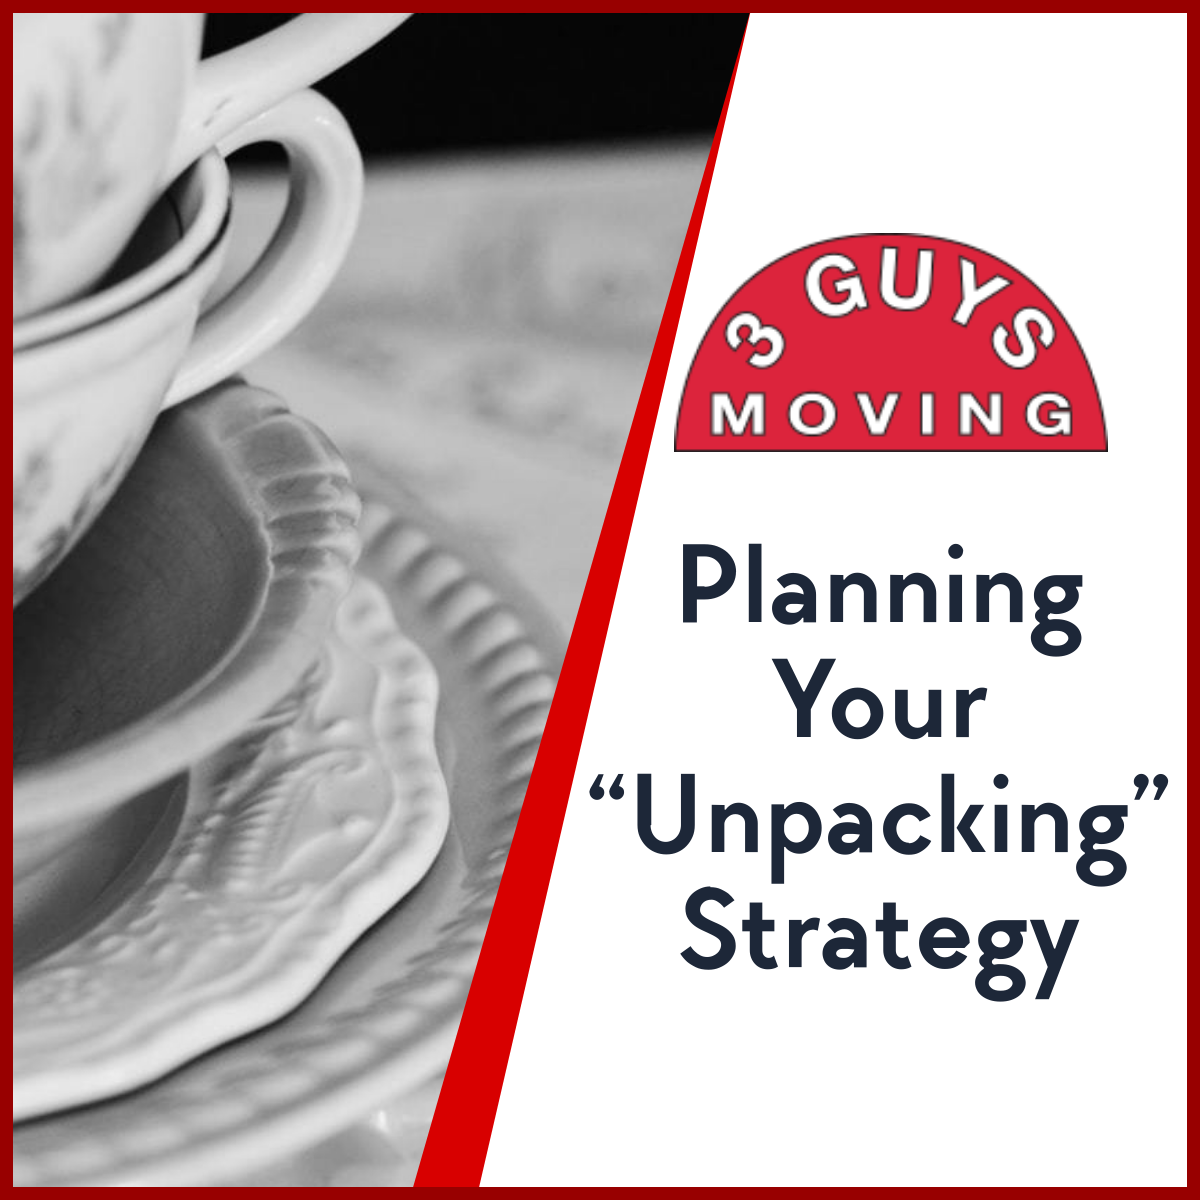 """Planning Your Unpacking Strategy - Planning Your """"Unpacking"""" Strategy"""